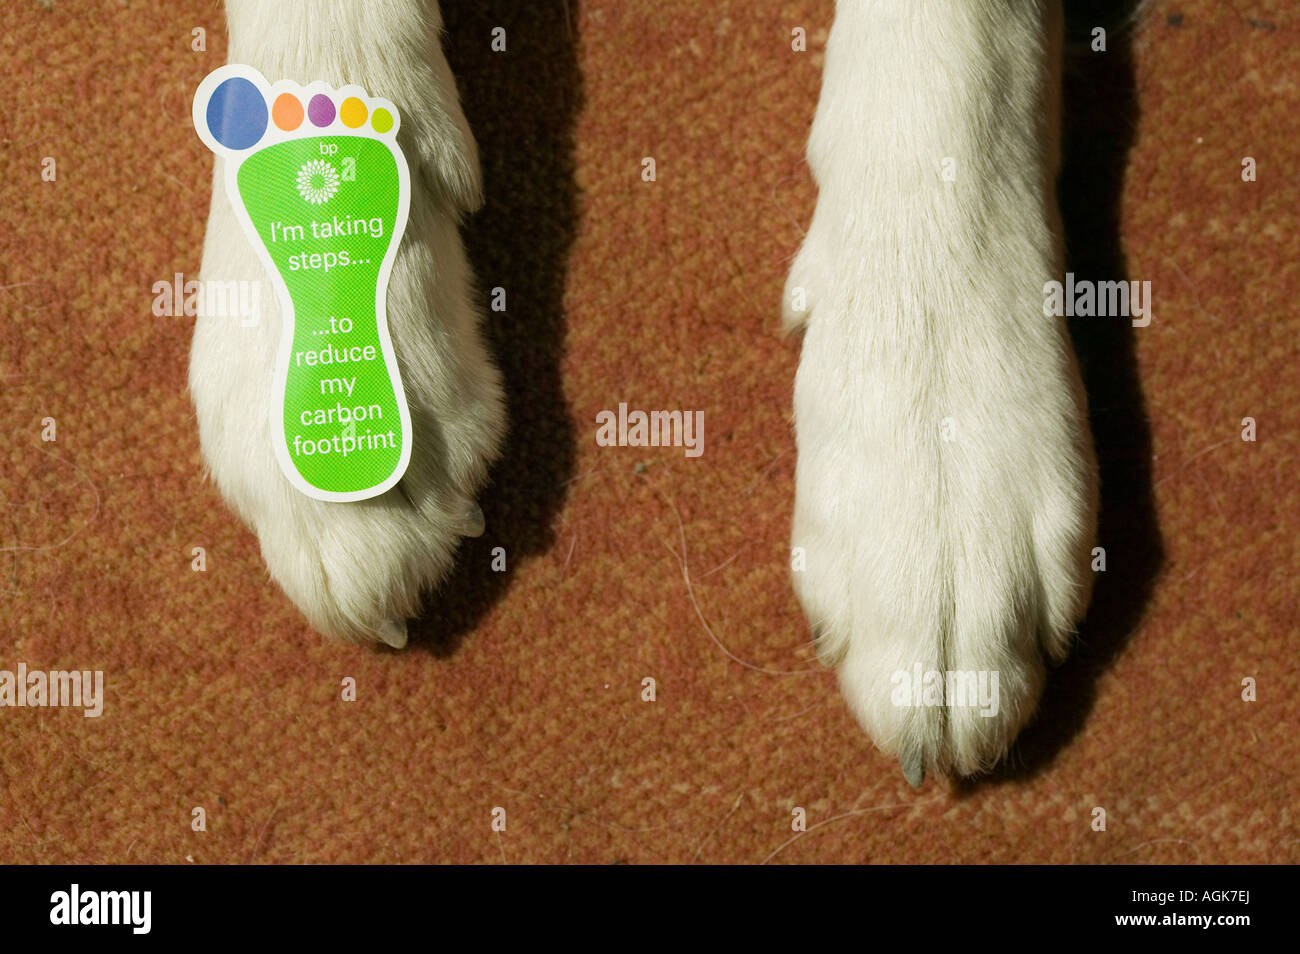 a dog with sticker on his paw about reducing your carbon footprint - Stock Image